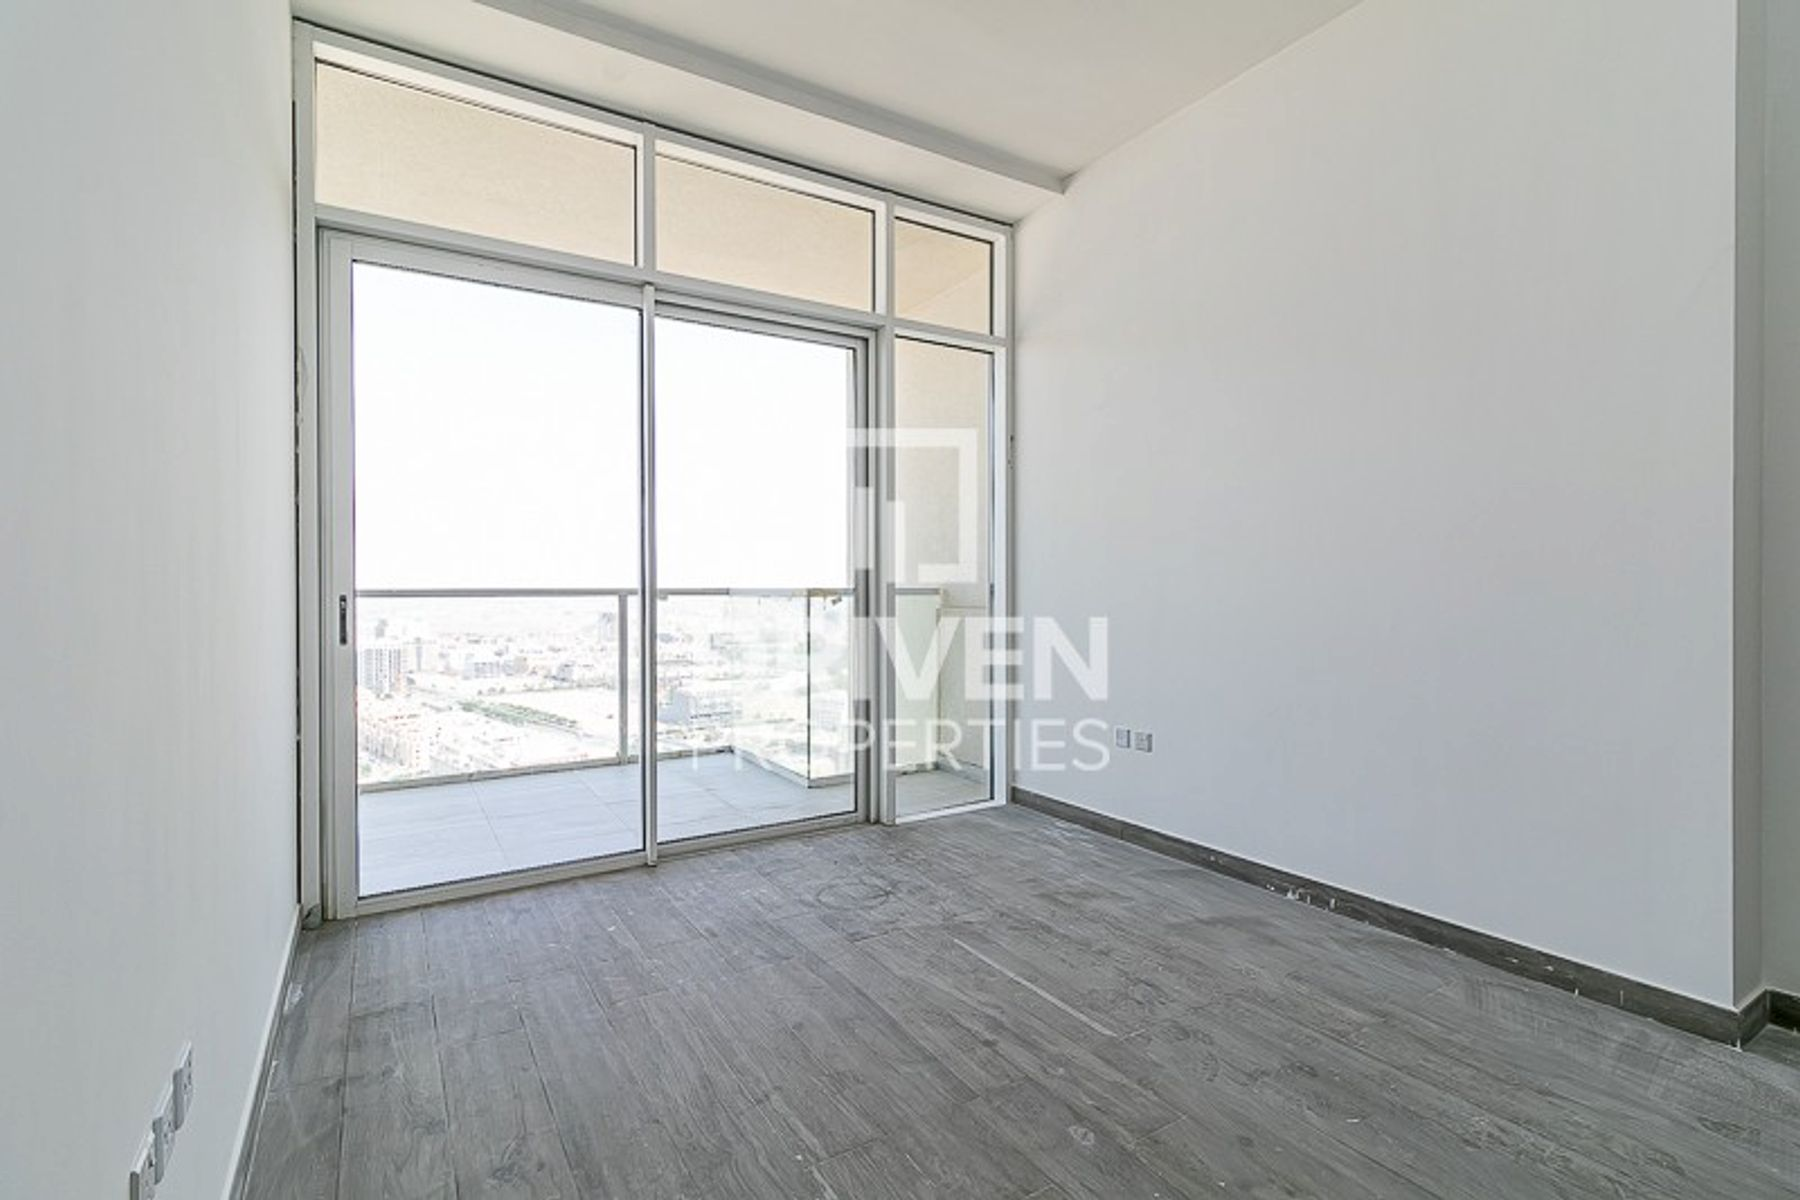 Spacious and Bright Brand New Studio Apt